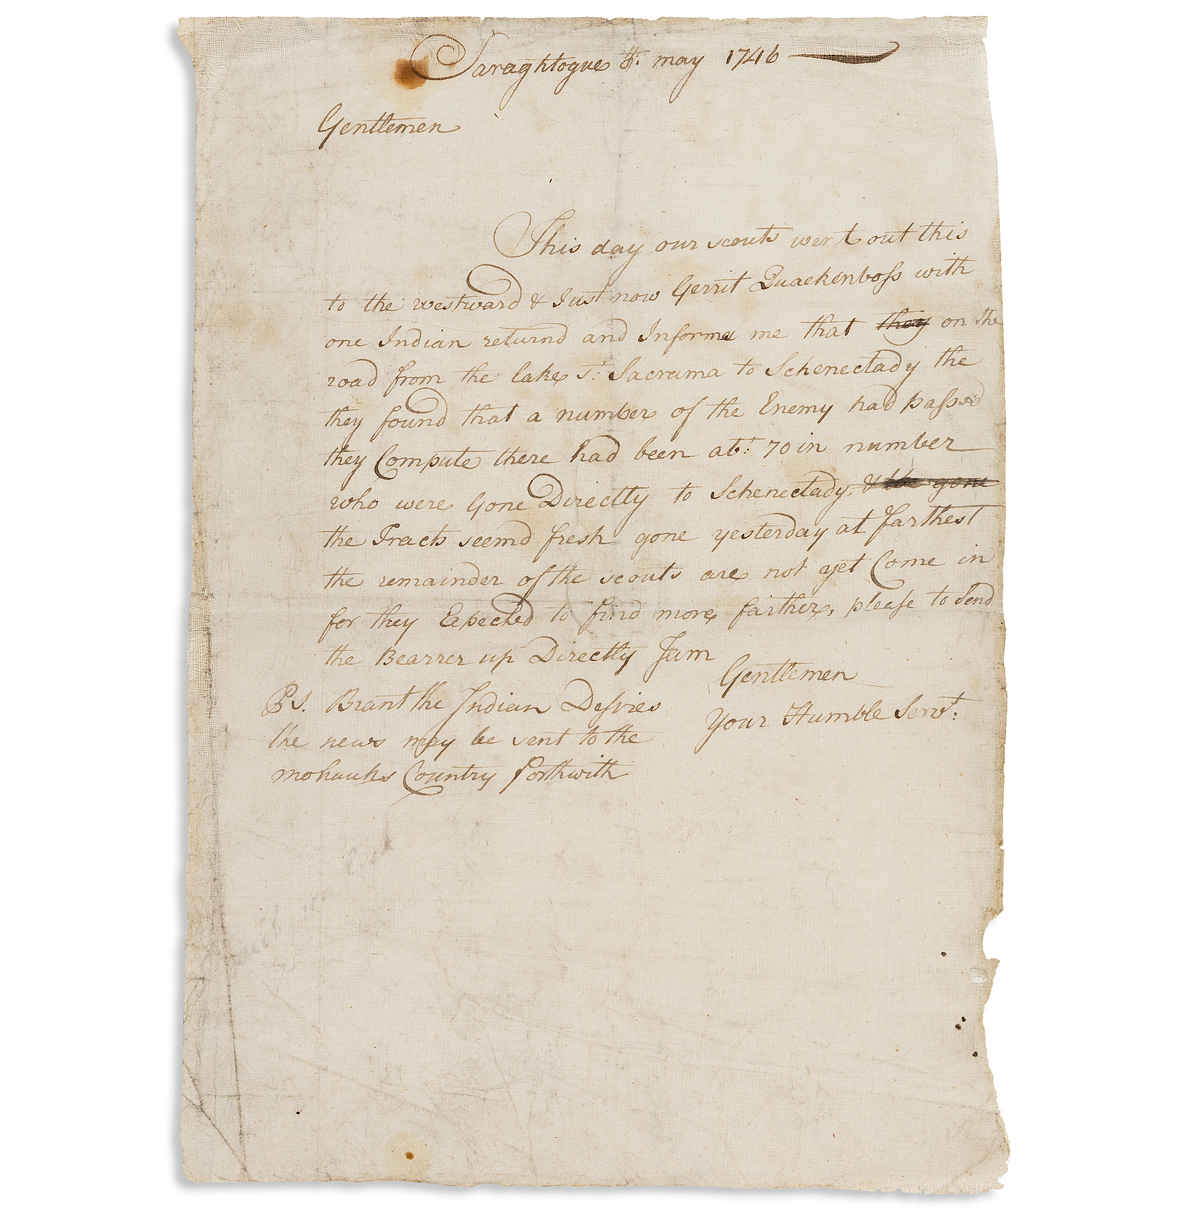 (COLONIAL WARS.) Letter describing Indian scouts and raiding parties on the New York frontier in King Georges War.